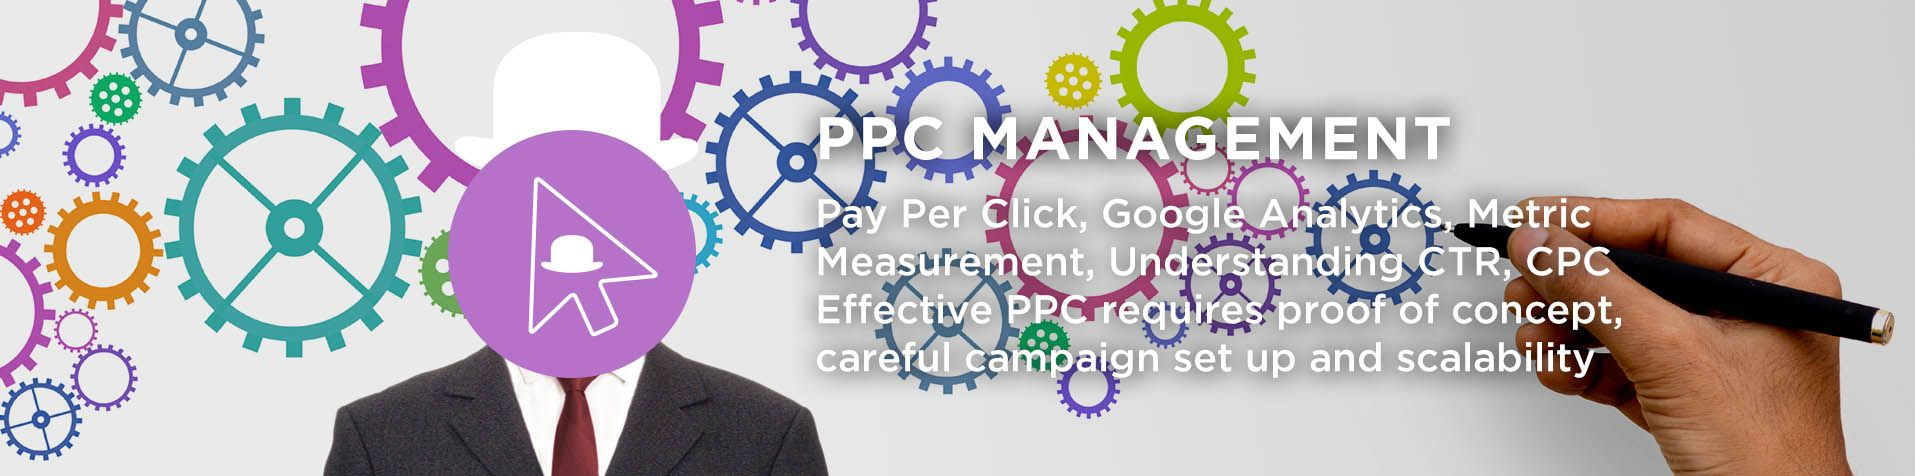 PPC_agency in mumbai (With images) Advertising methods